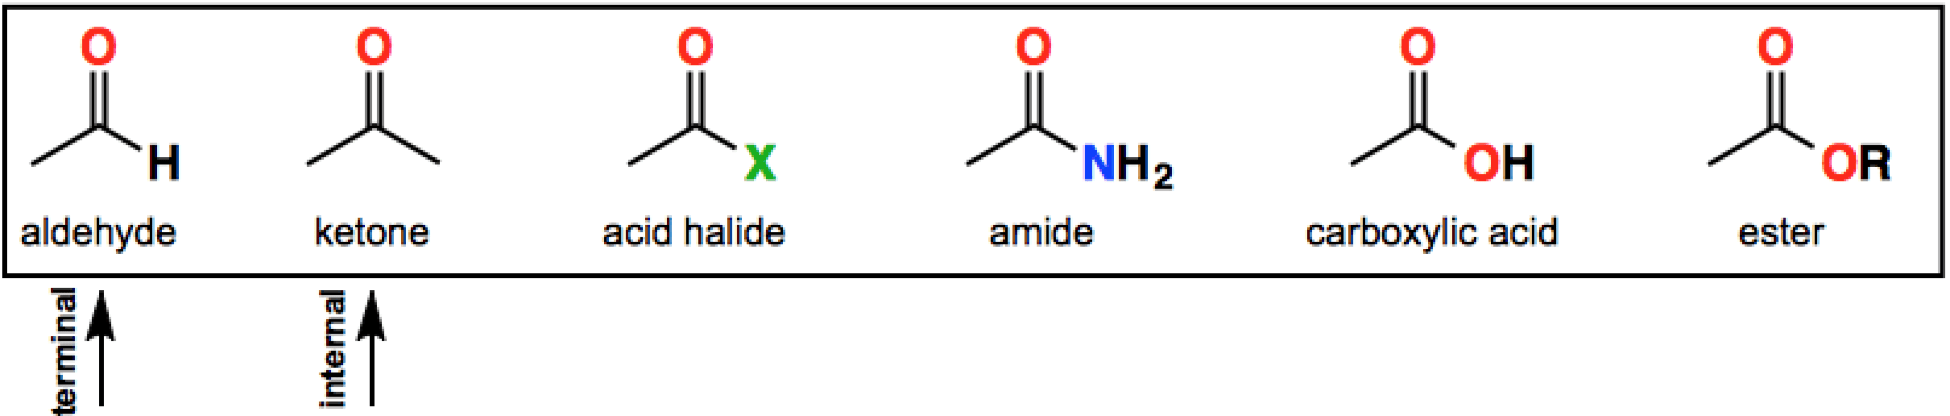 List of Carbonyl Functional Groups